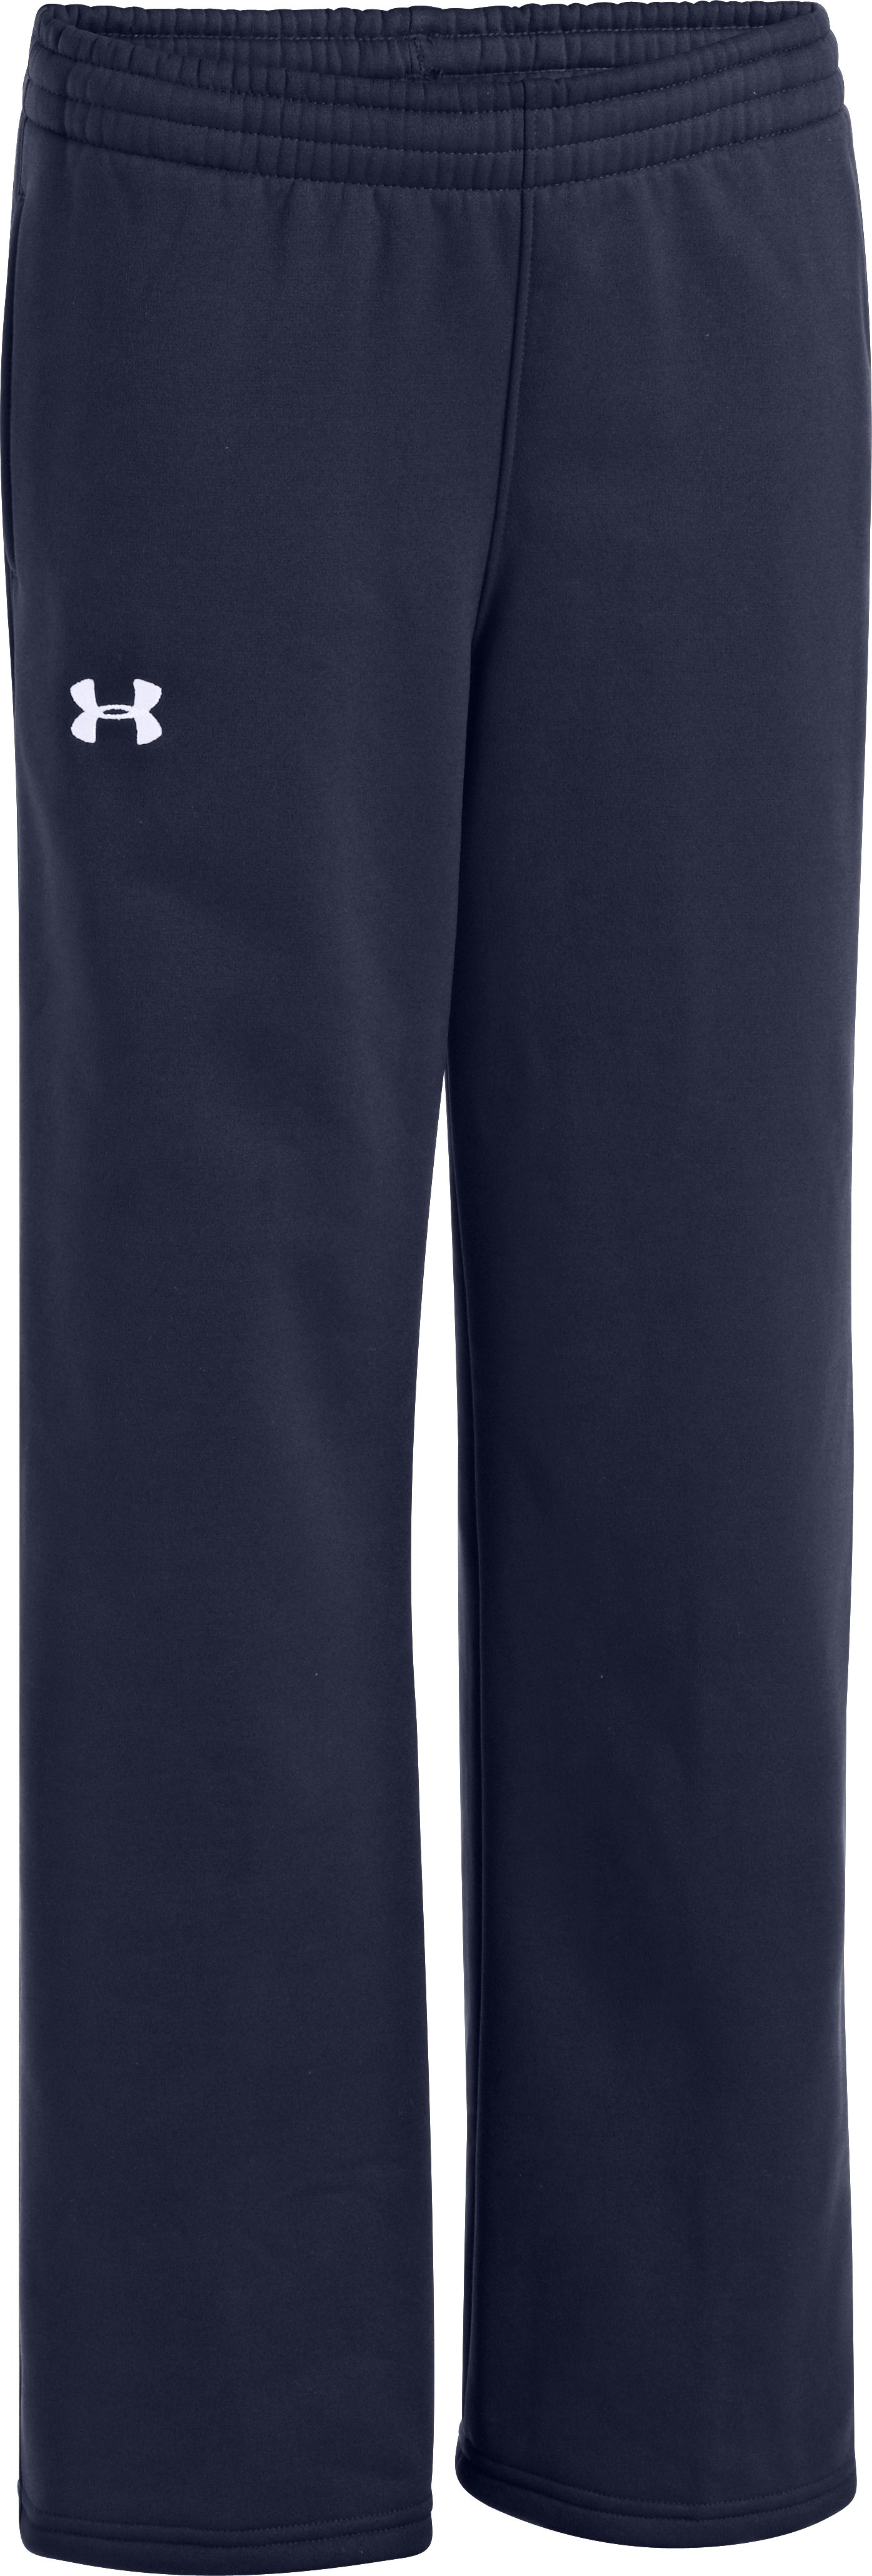 Boys' Armour® Fleece Storm Team Pants, Midnight Navy, zoomed image